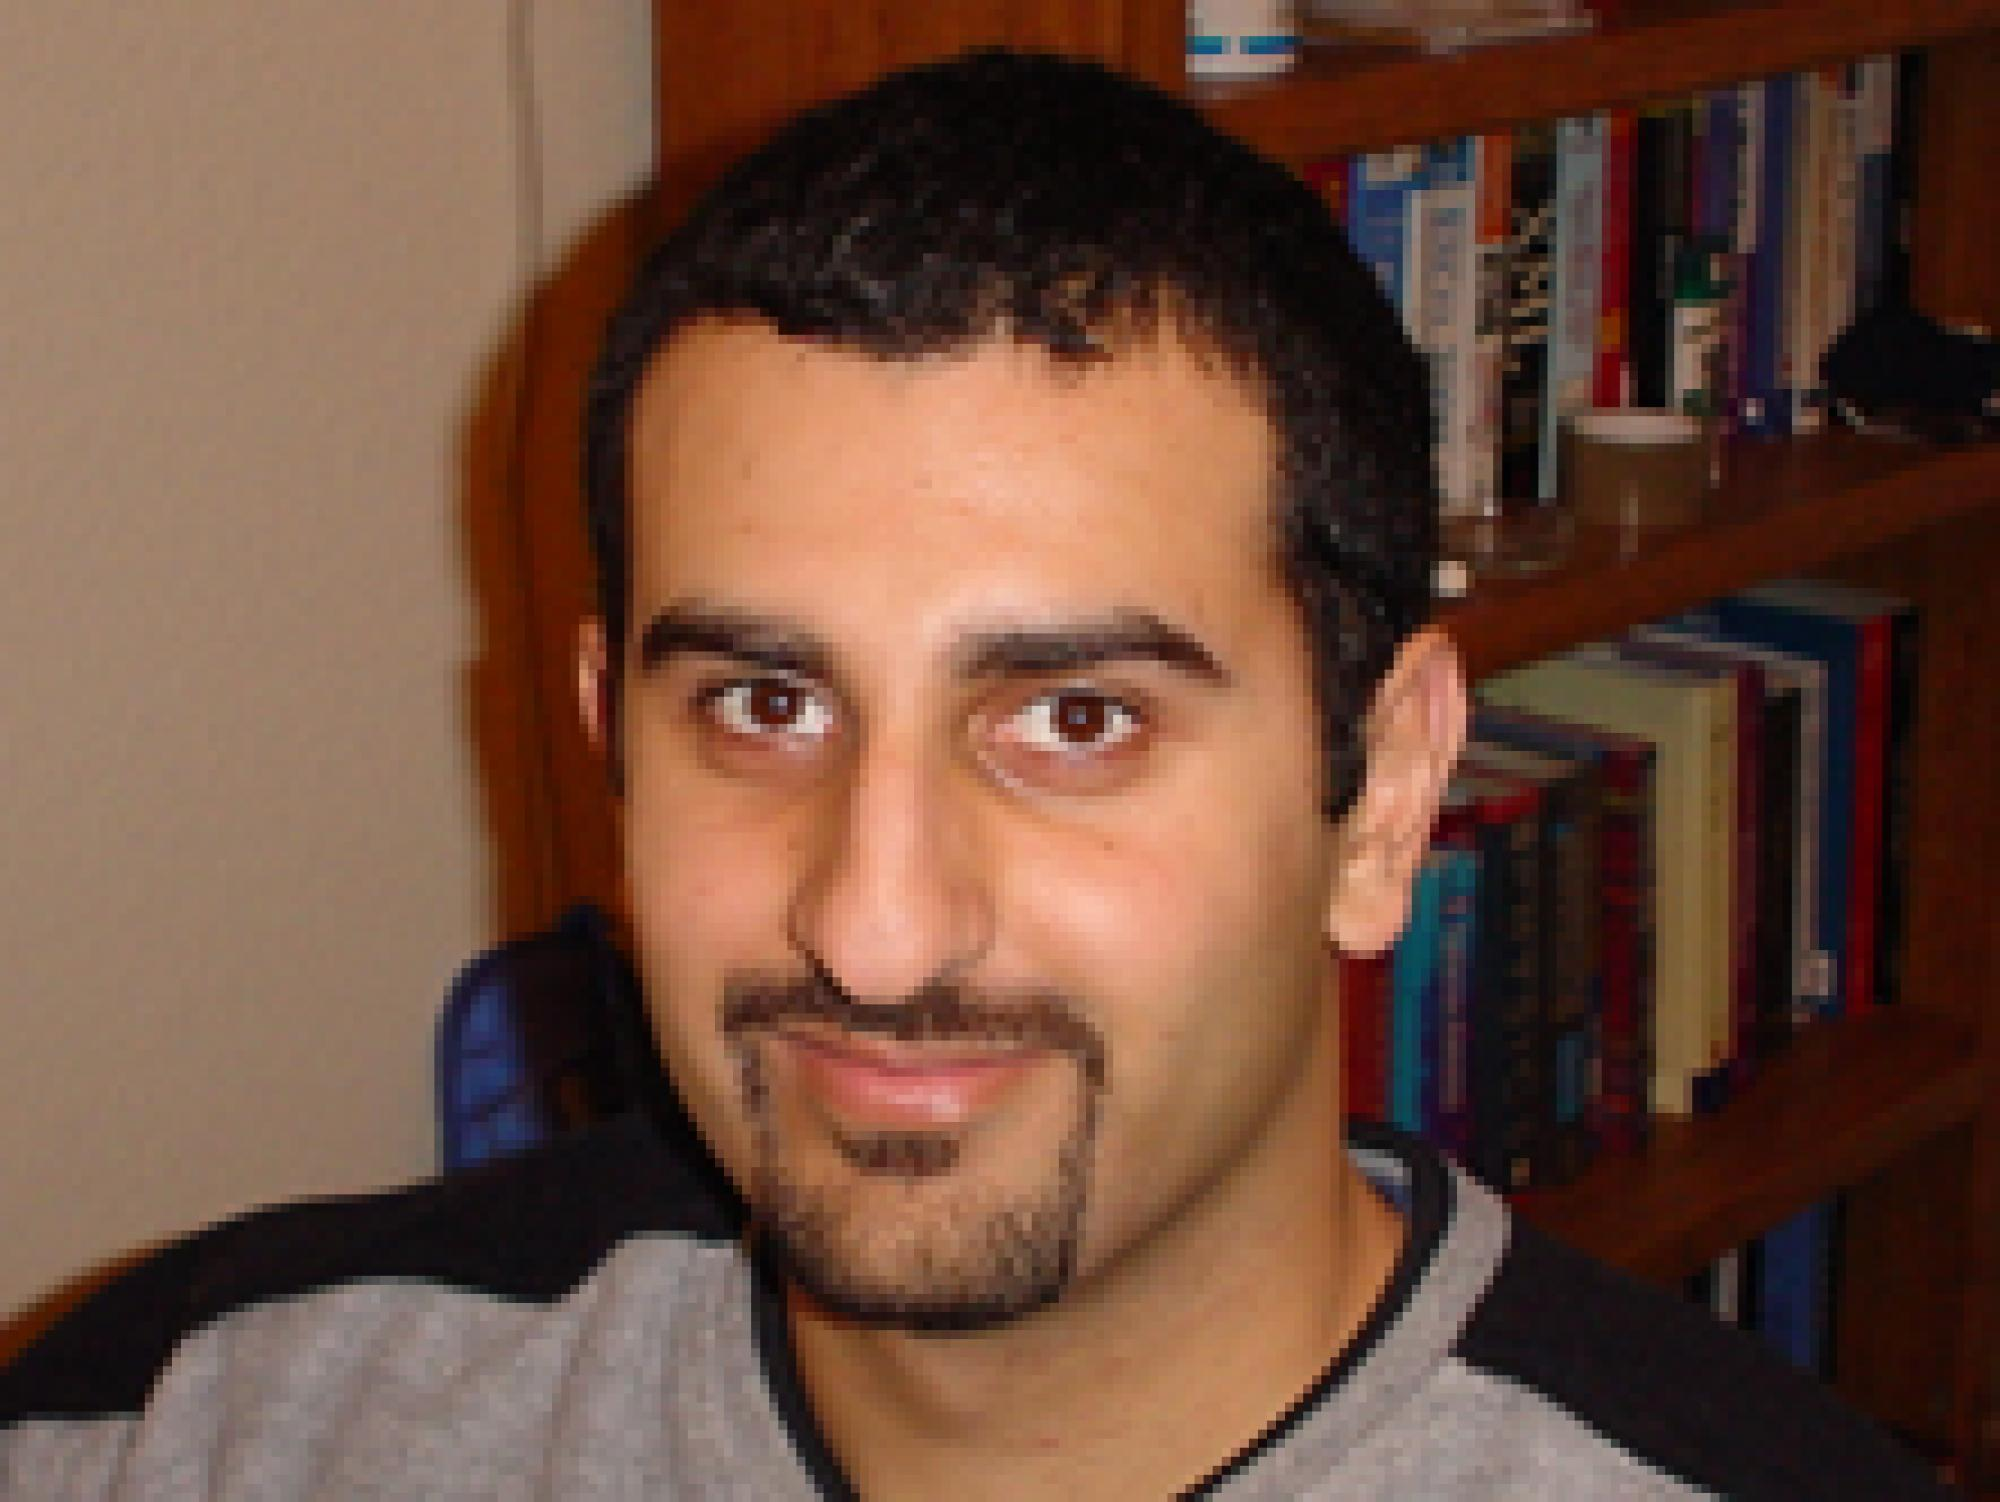 As a UA doctoral candidate, Ahmed Abbasi served as a research associate for the UA Artificial Intelligence Lab. Abbasi earned his doctoral degree in management information systems in 2008.